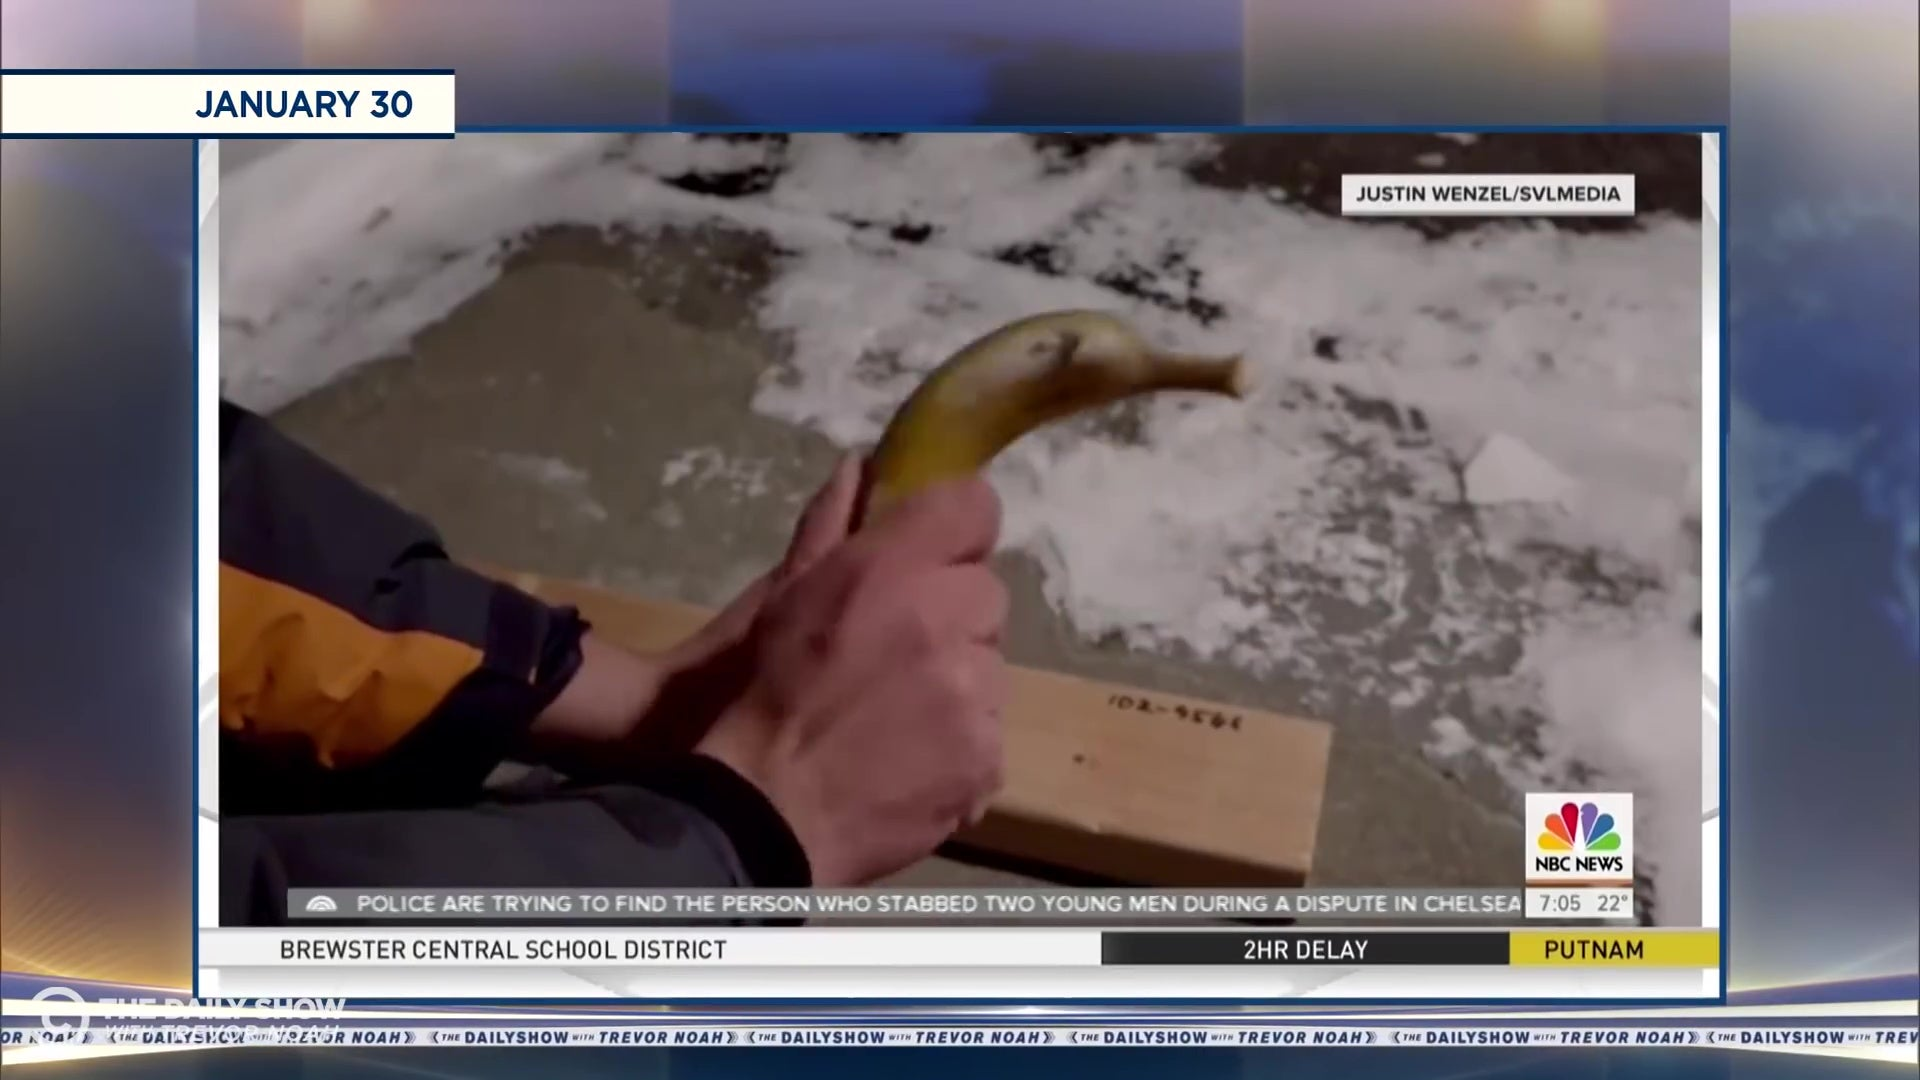 A banana being used as a hammer.